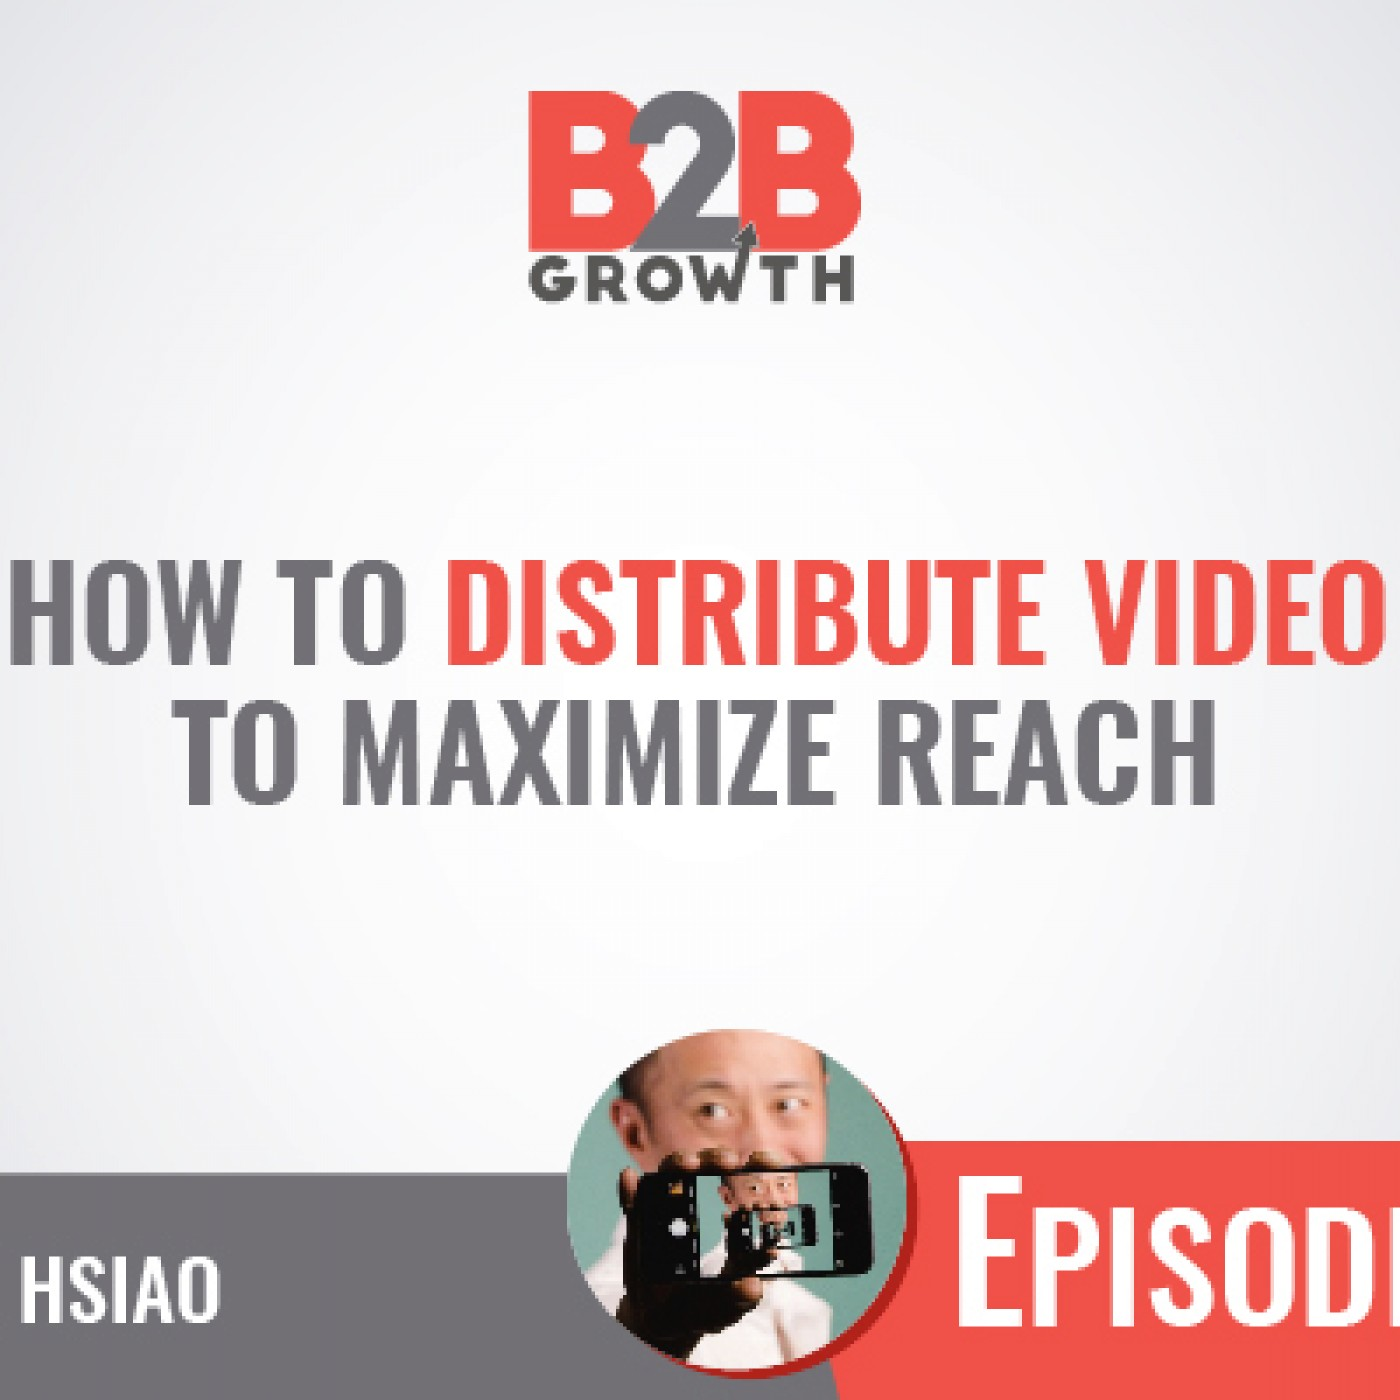 551: How to Distribute Video to Maximize Reach w/ Jason Hsiao